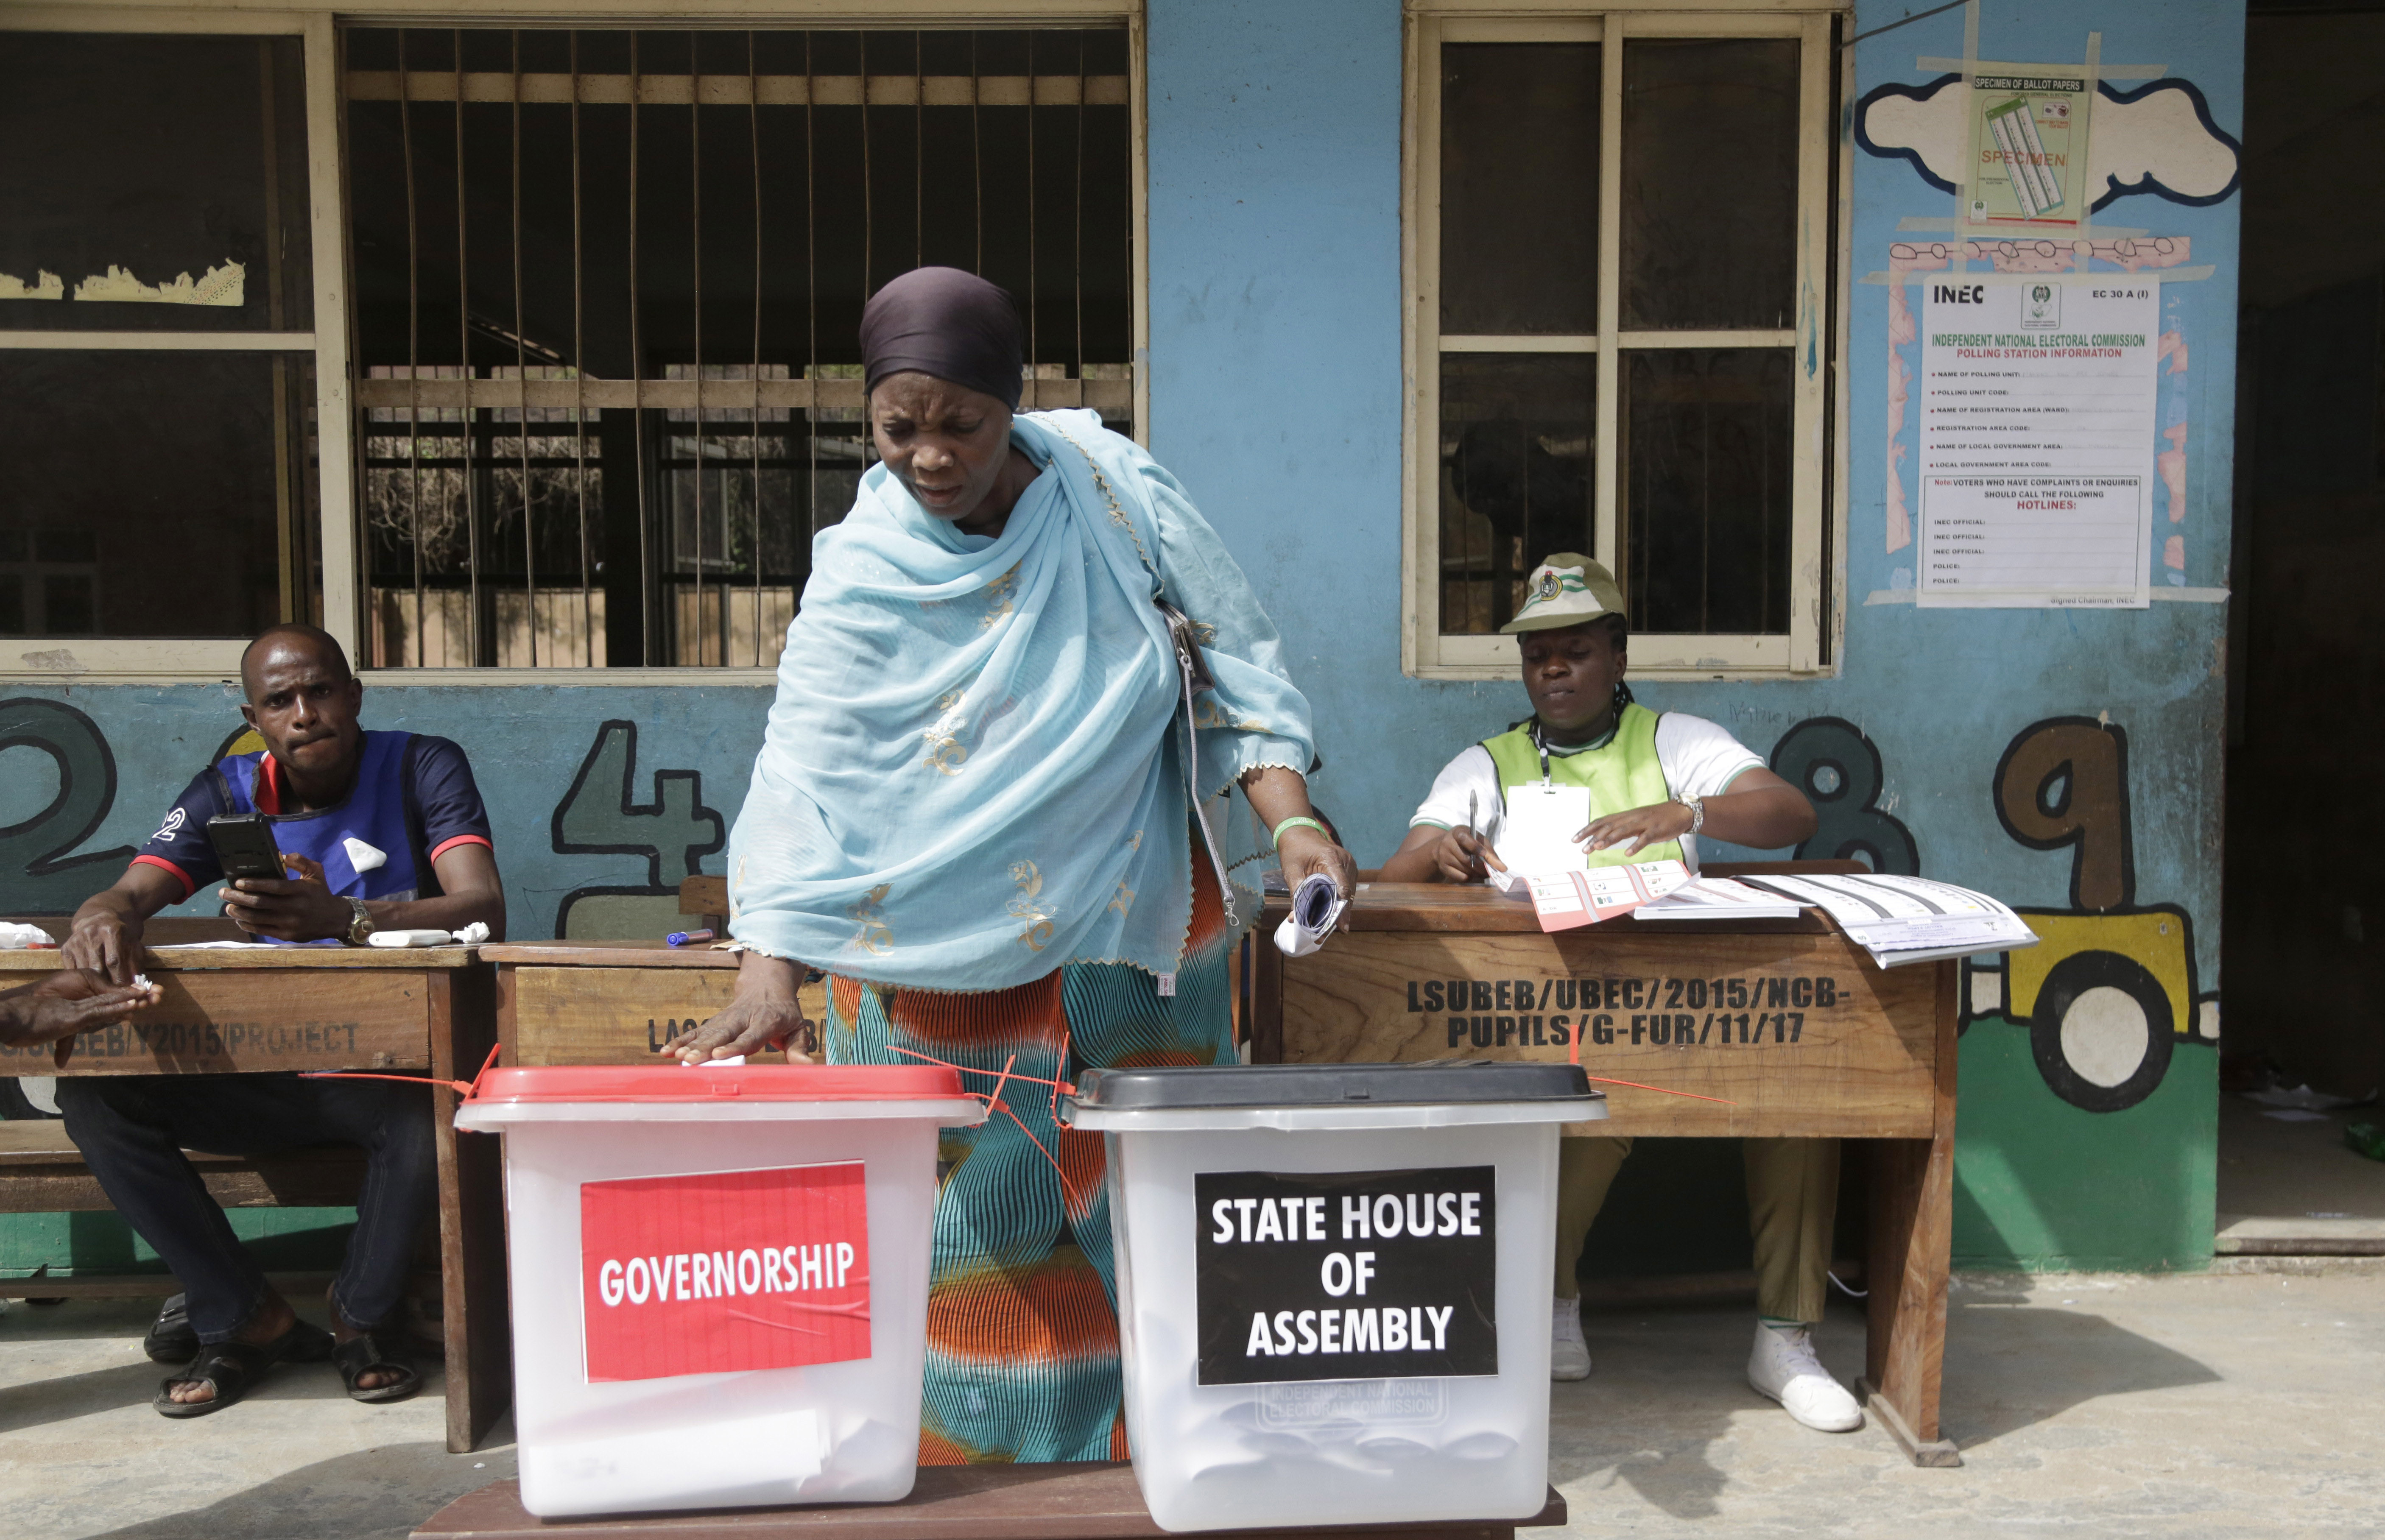 Nigerians Vote for Powerful Governor Posts Amid Some Unrest - VOA News